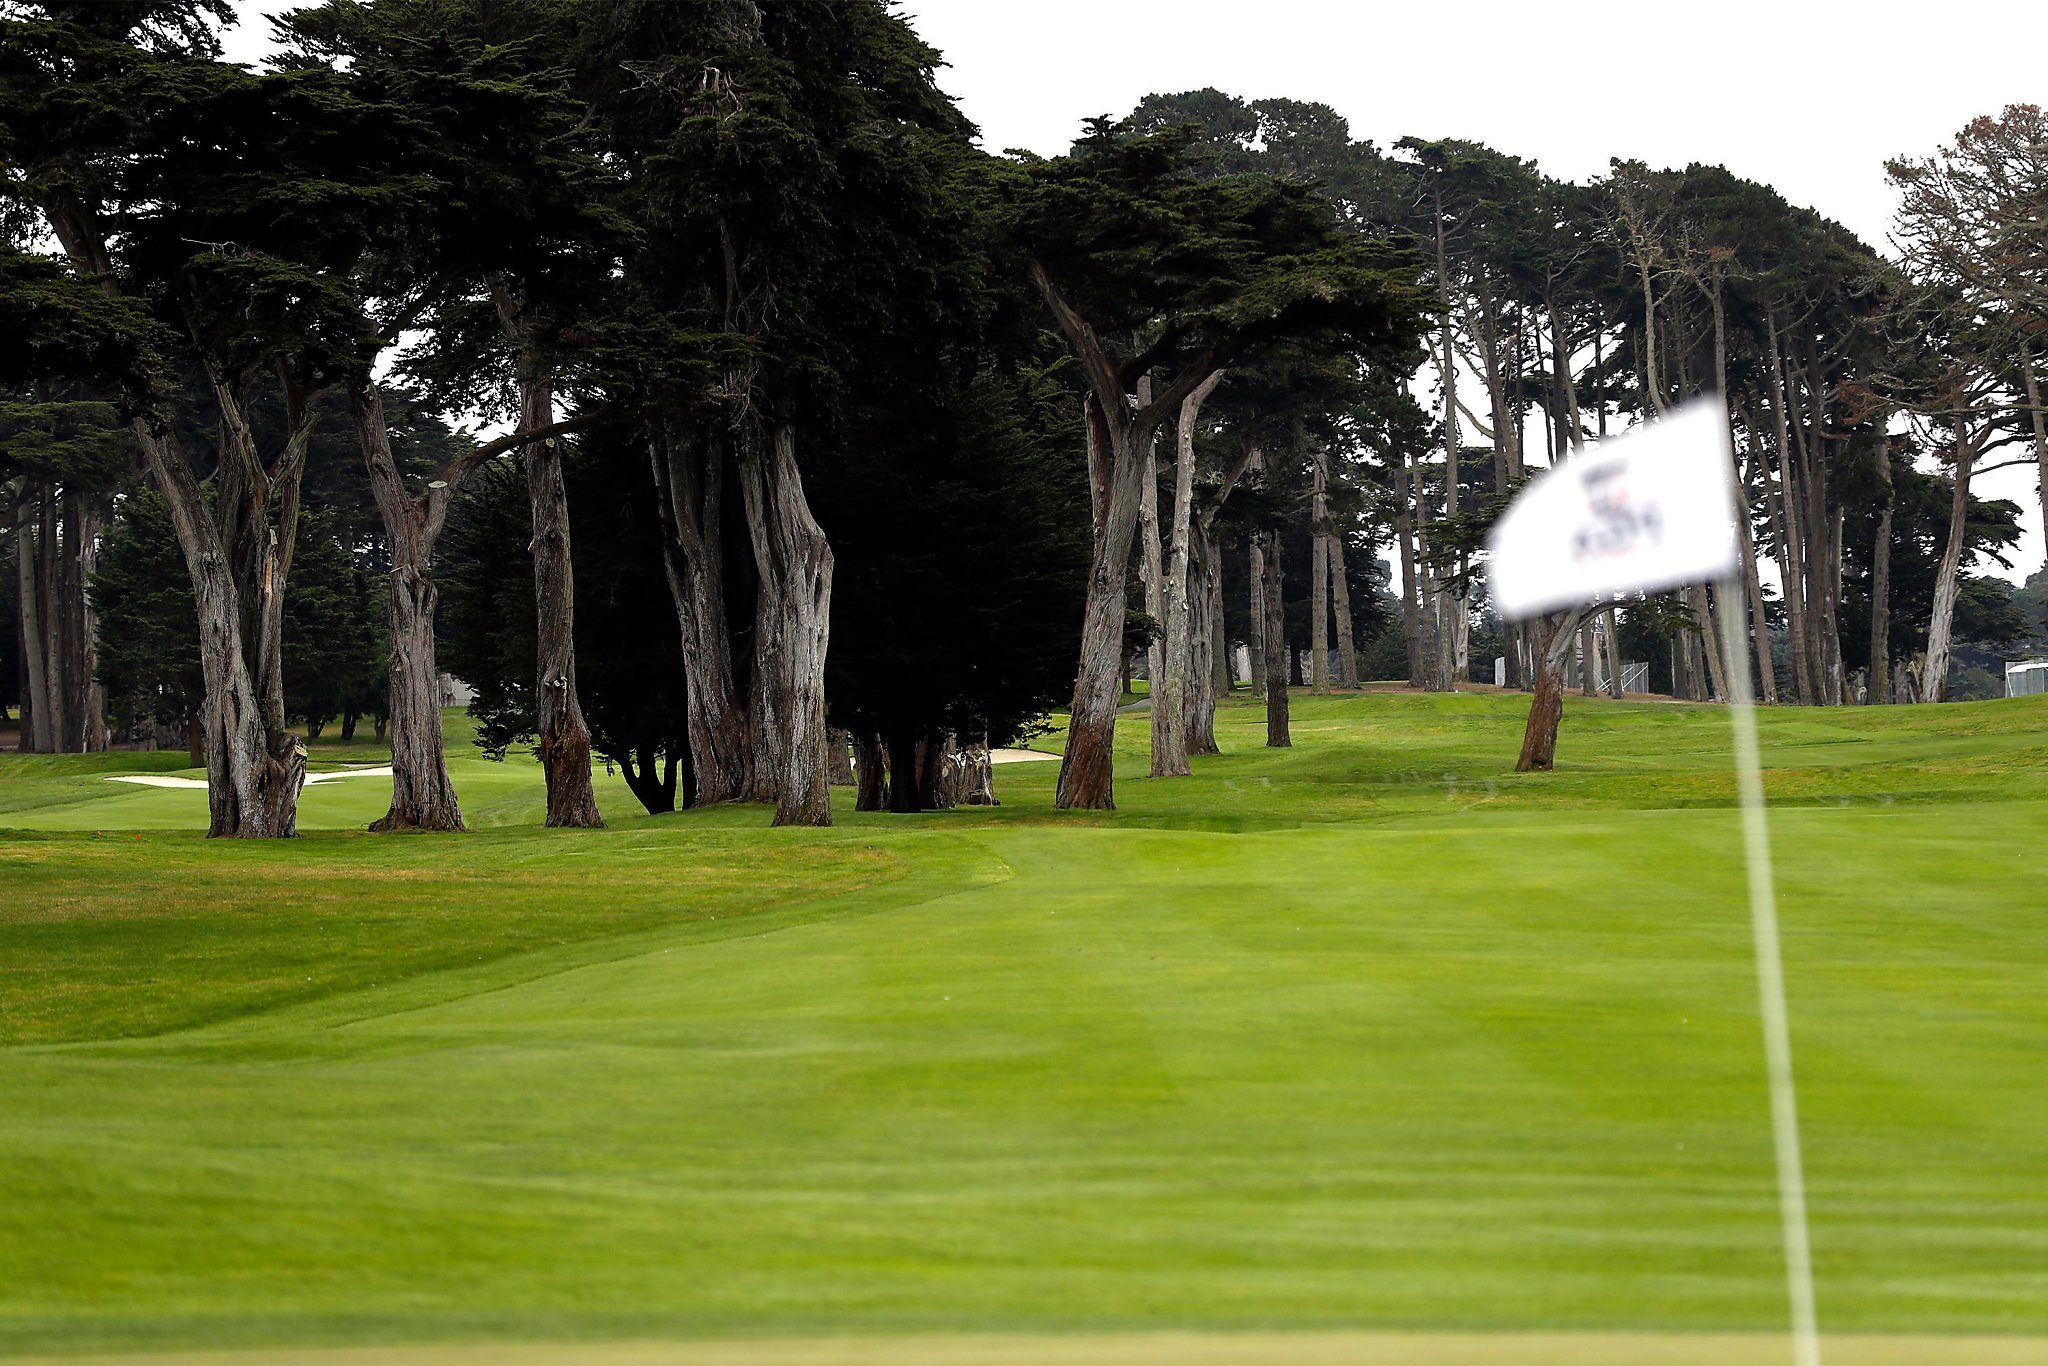 Harding Park Poised To Host Pga Championship With Thin Fairways And Thick Rough Sfchronicle Com